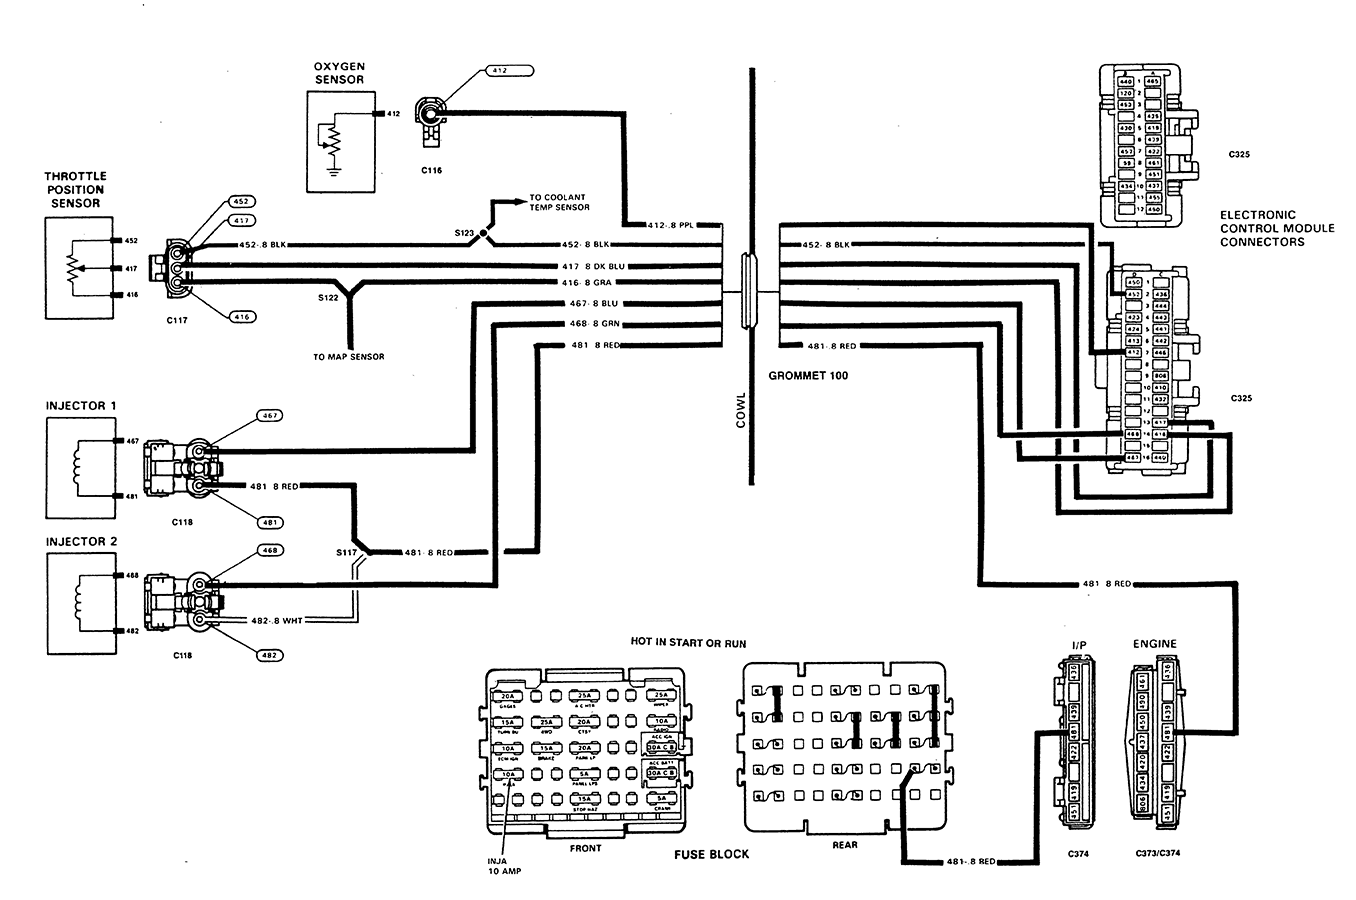 Where Can I Find An Oxygen Sensor Wiring Diagram For A